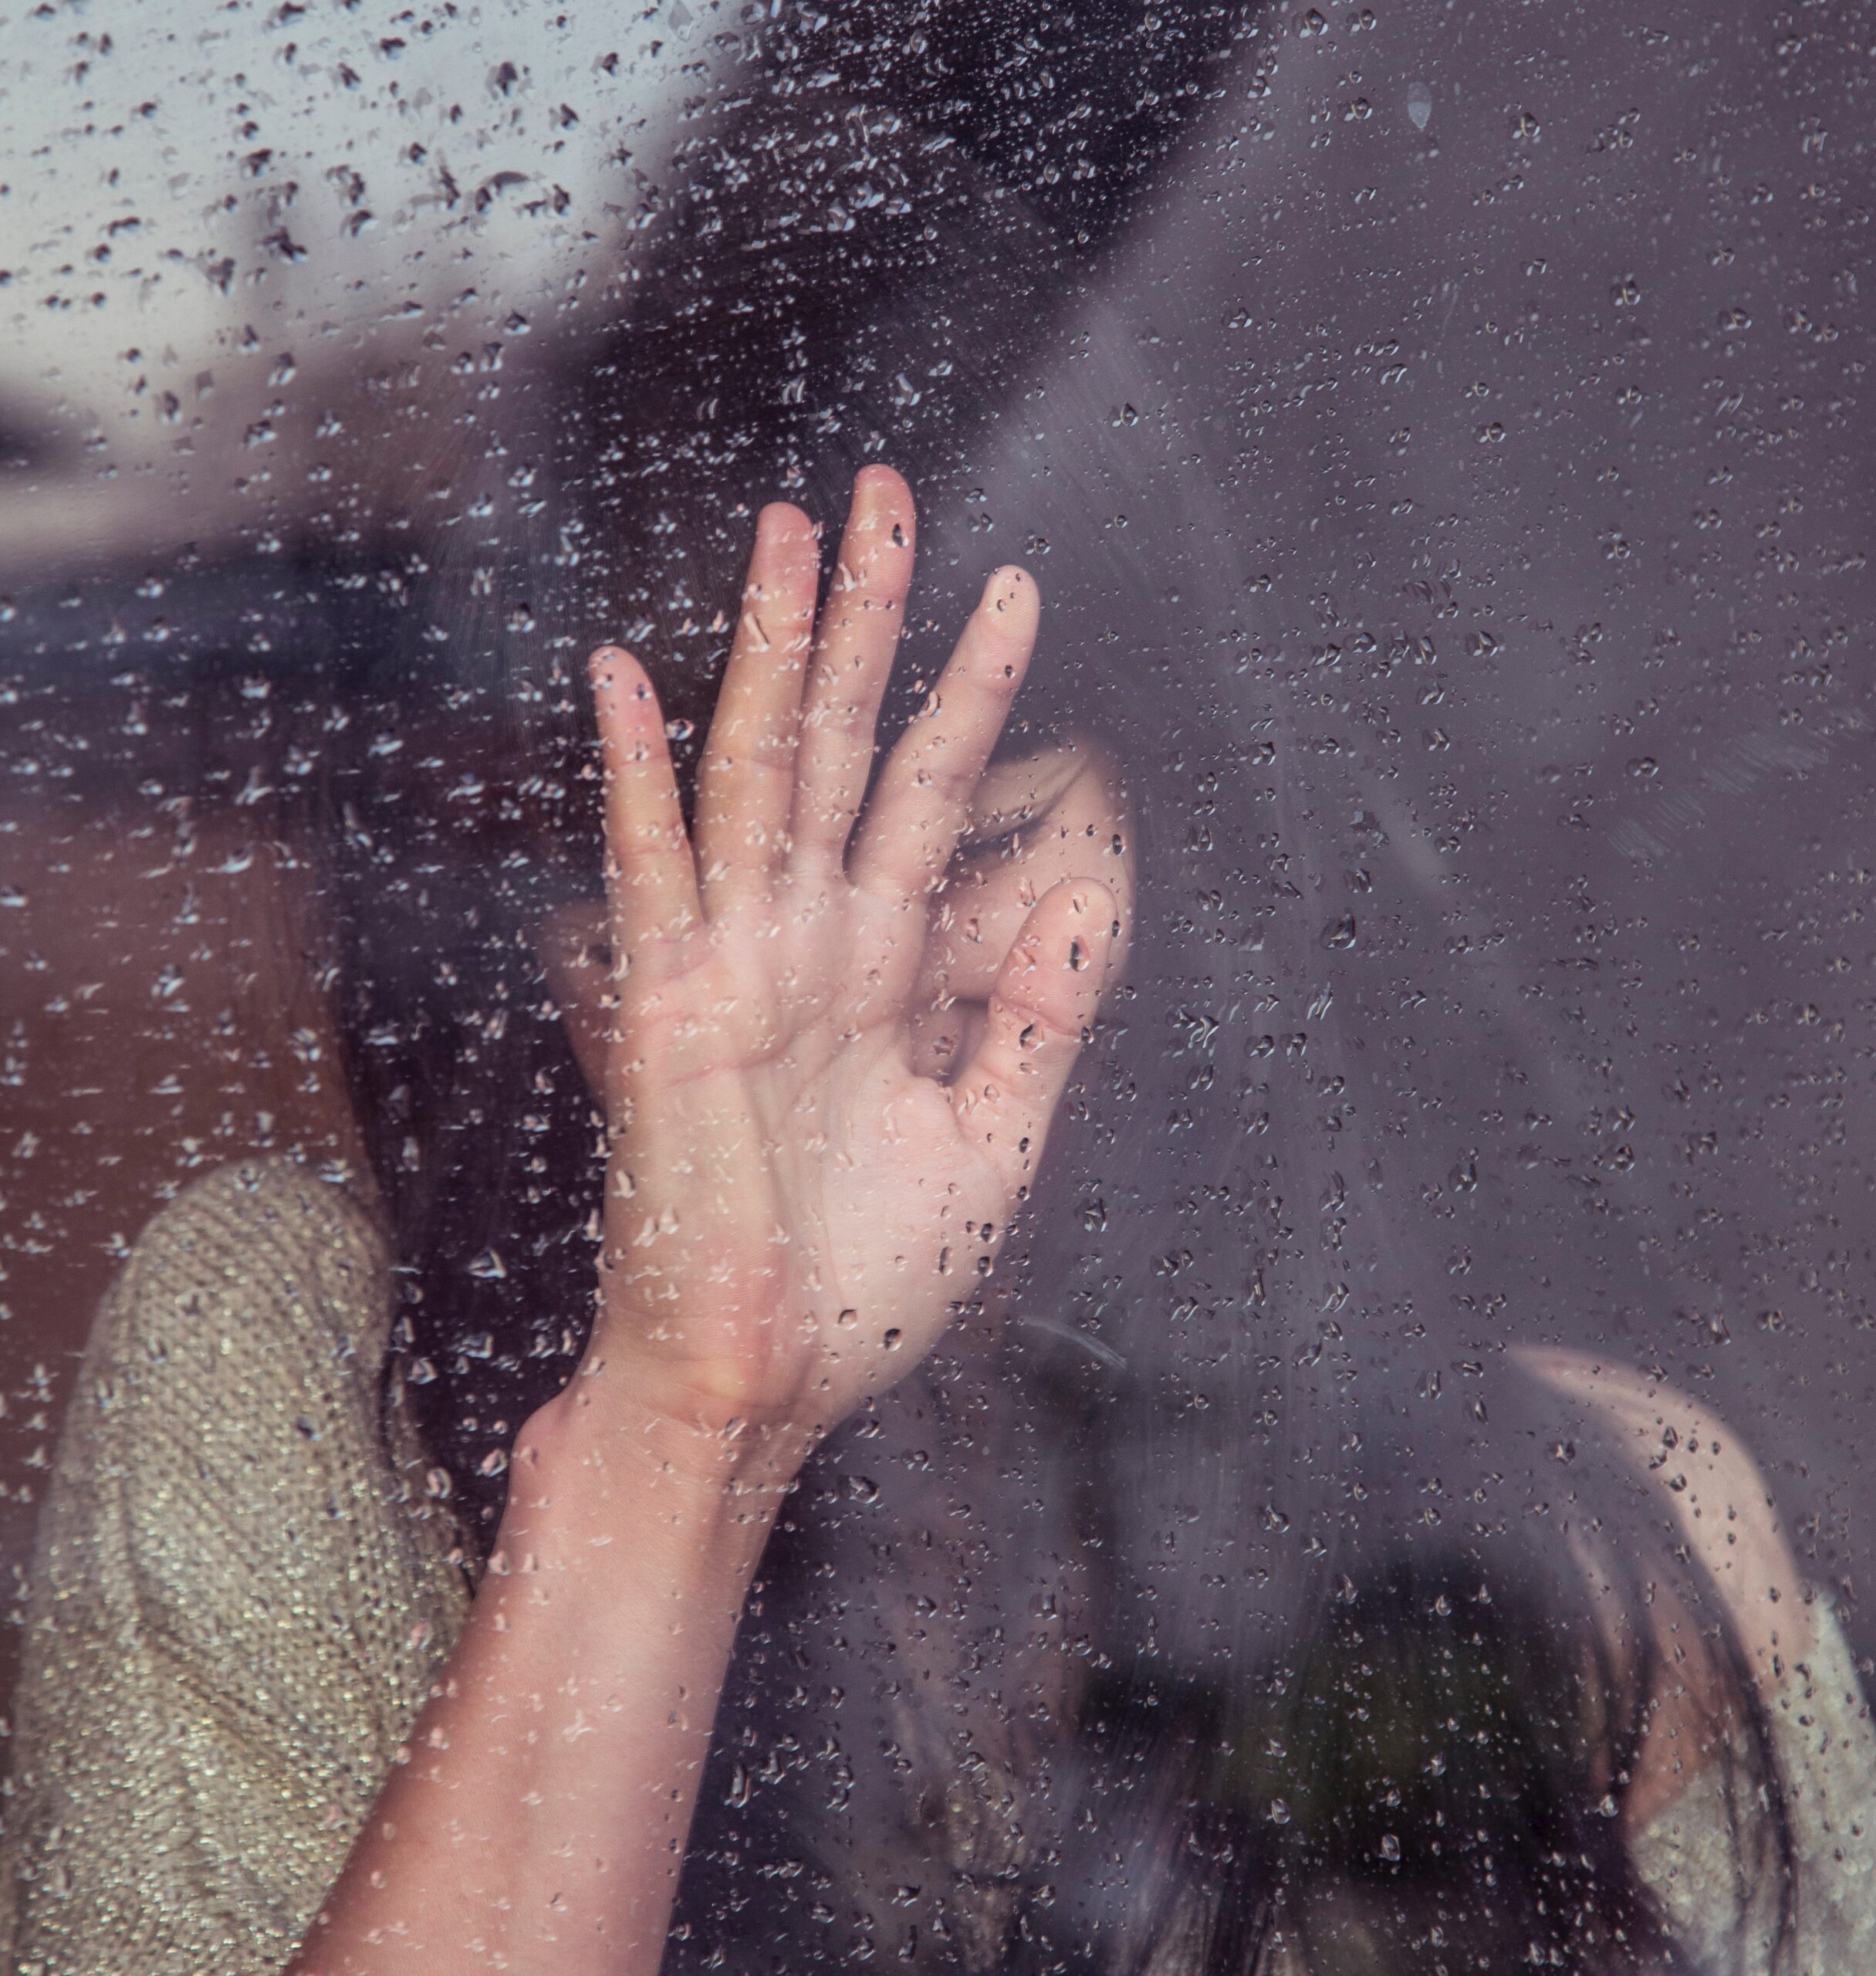 Young lady crying with her hand on window covered with raindrops